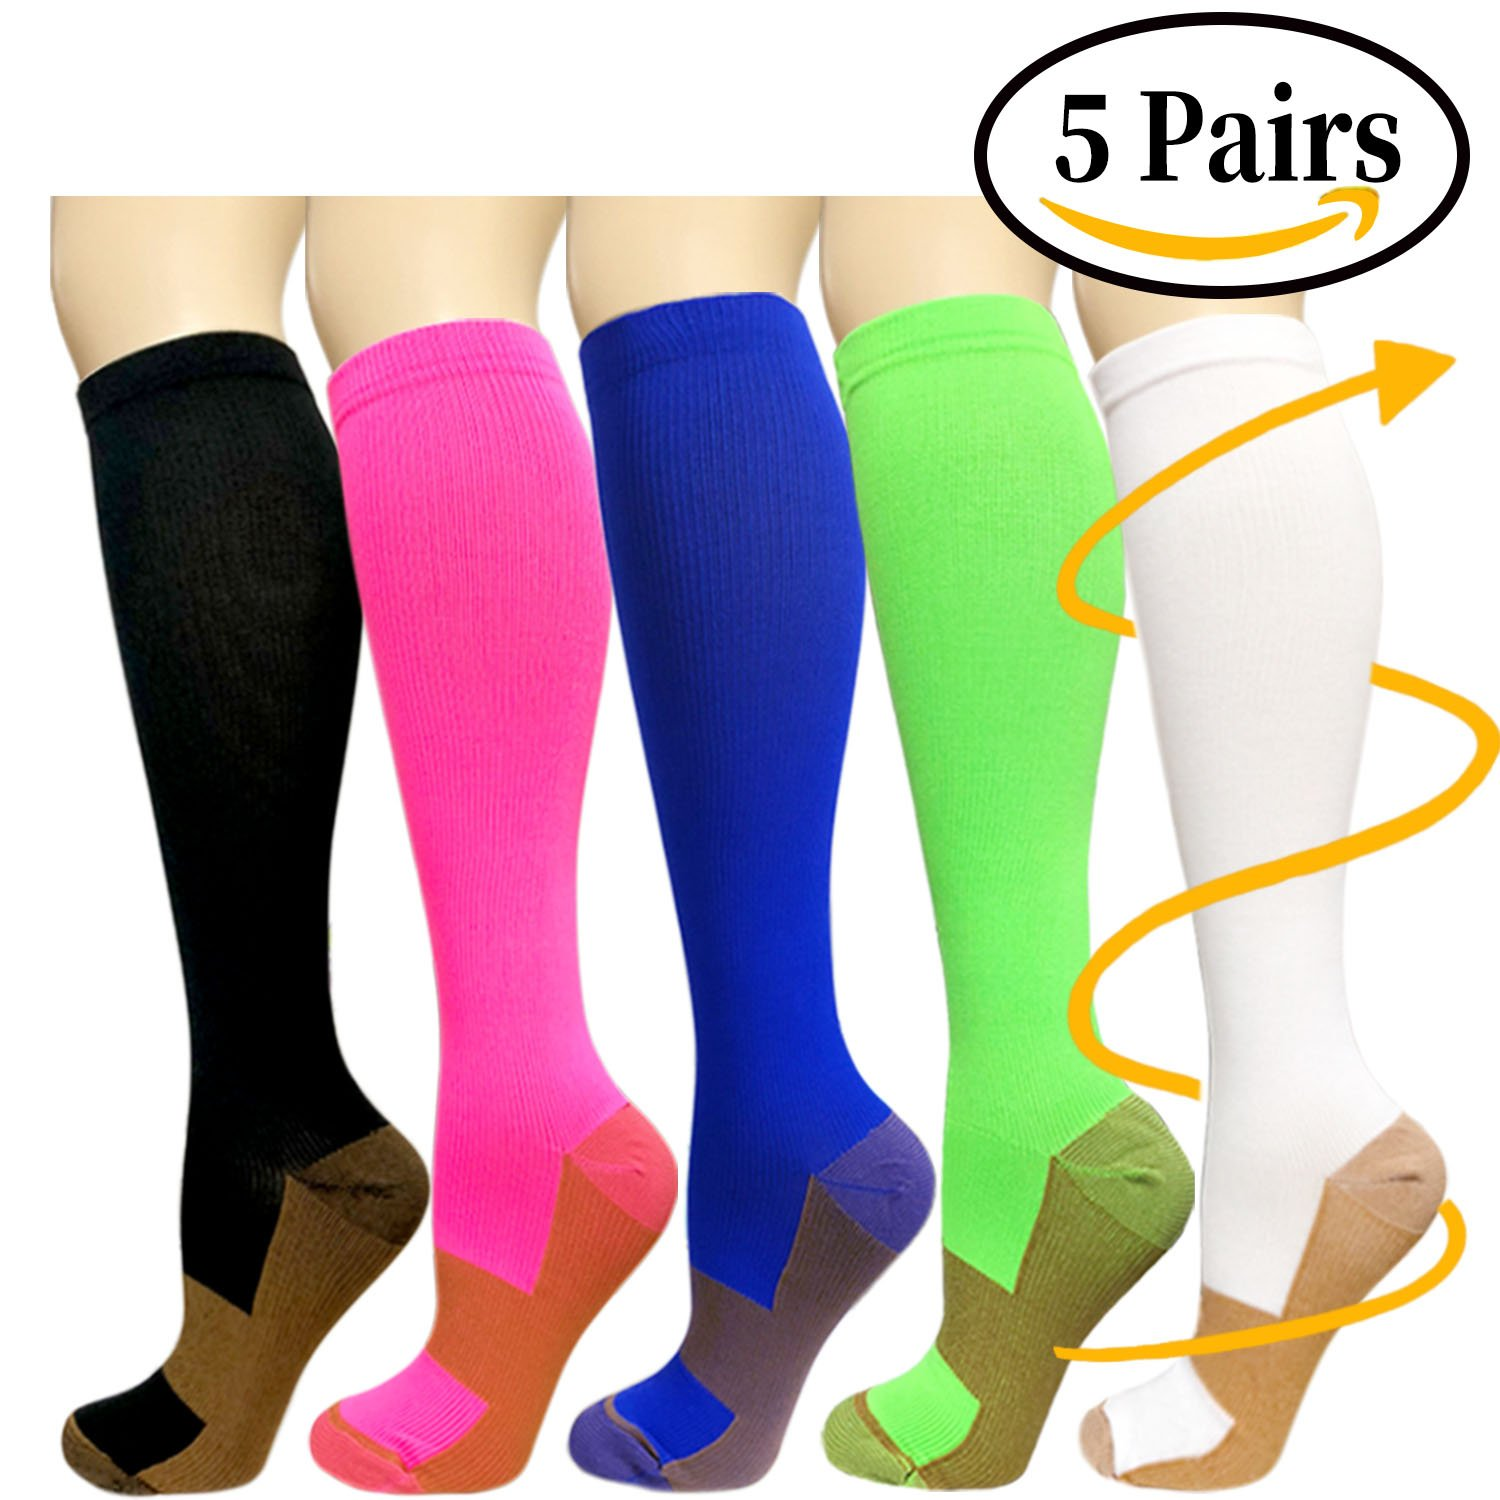 Copper Compression Socks For Men & Women(5 Pairs)- Best For Running,Athletic,Medical,Pregnancy and Travel -15-20mmHg(Assort1,S/M)